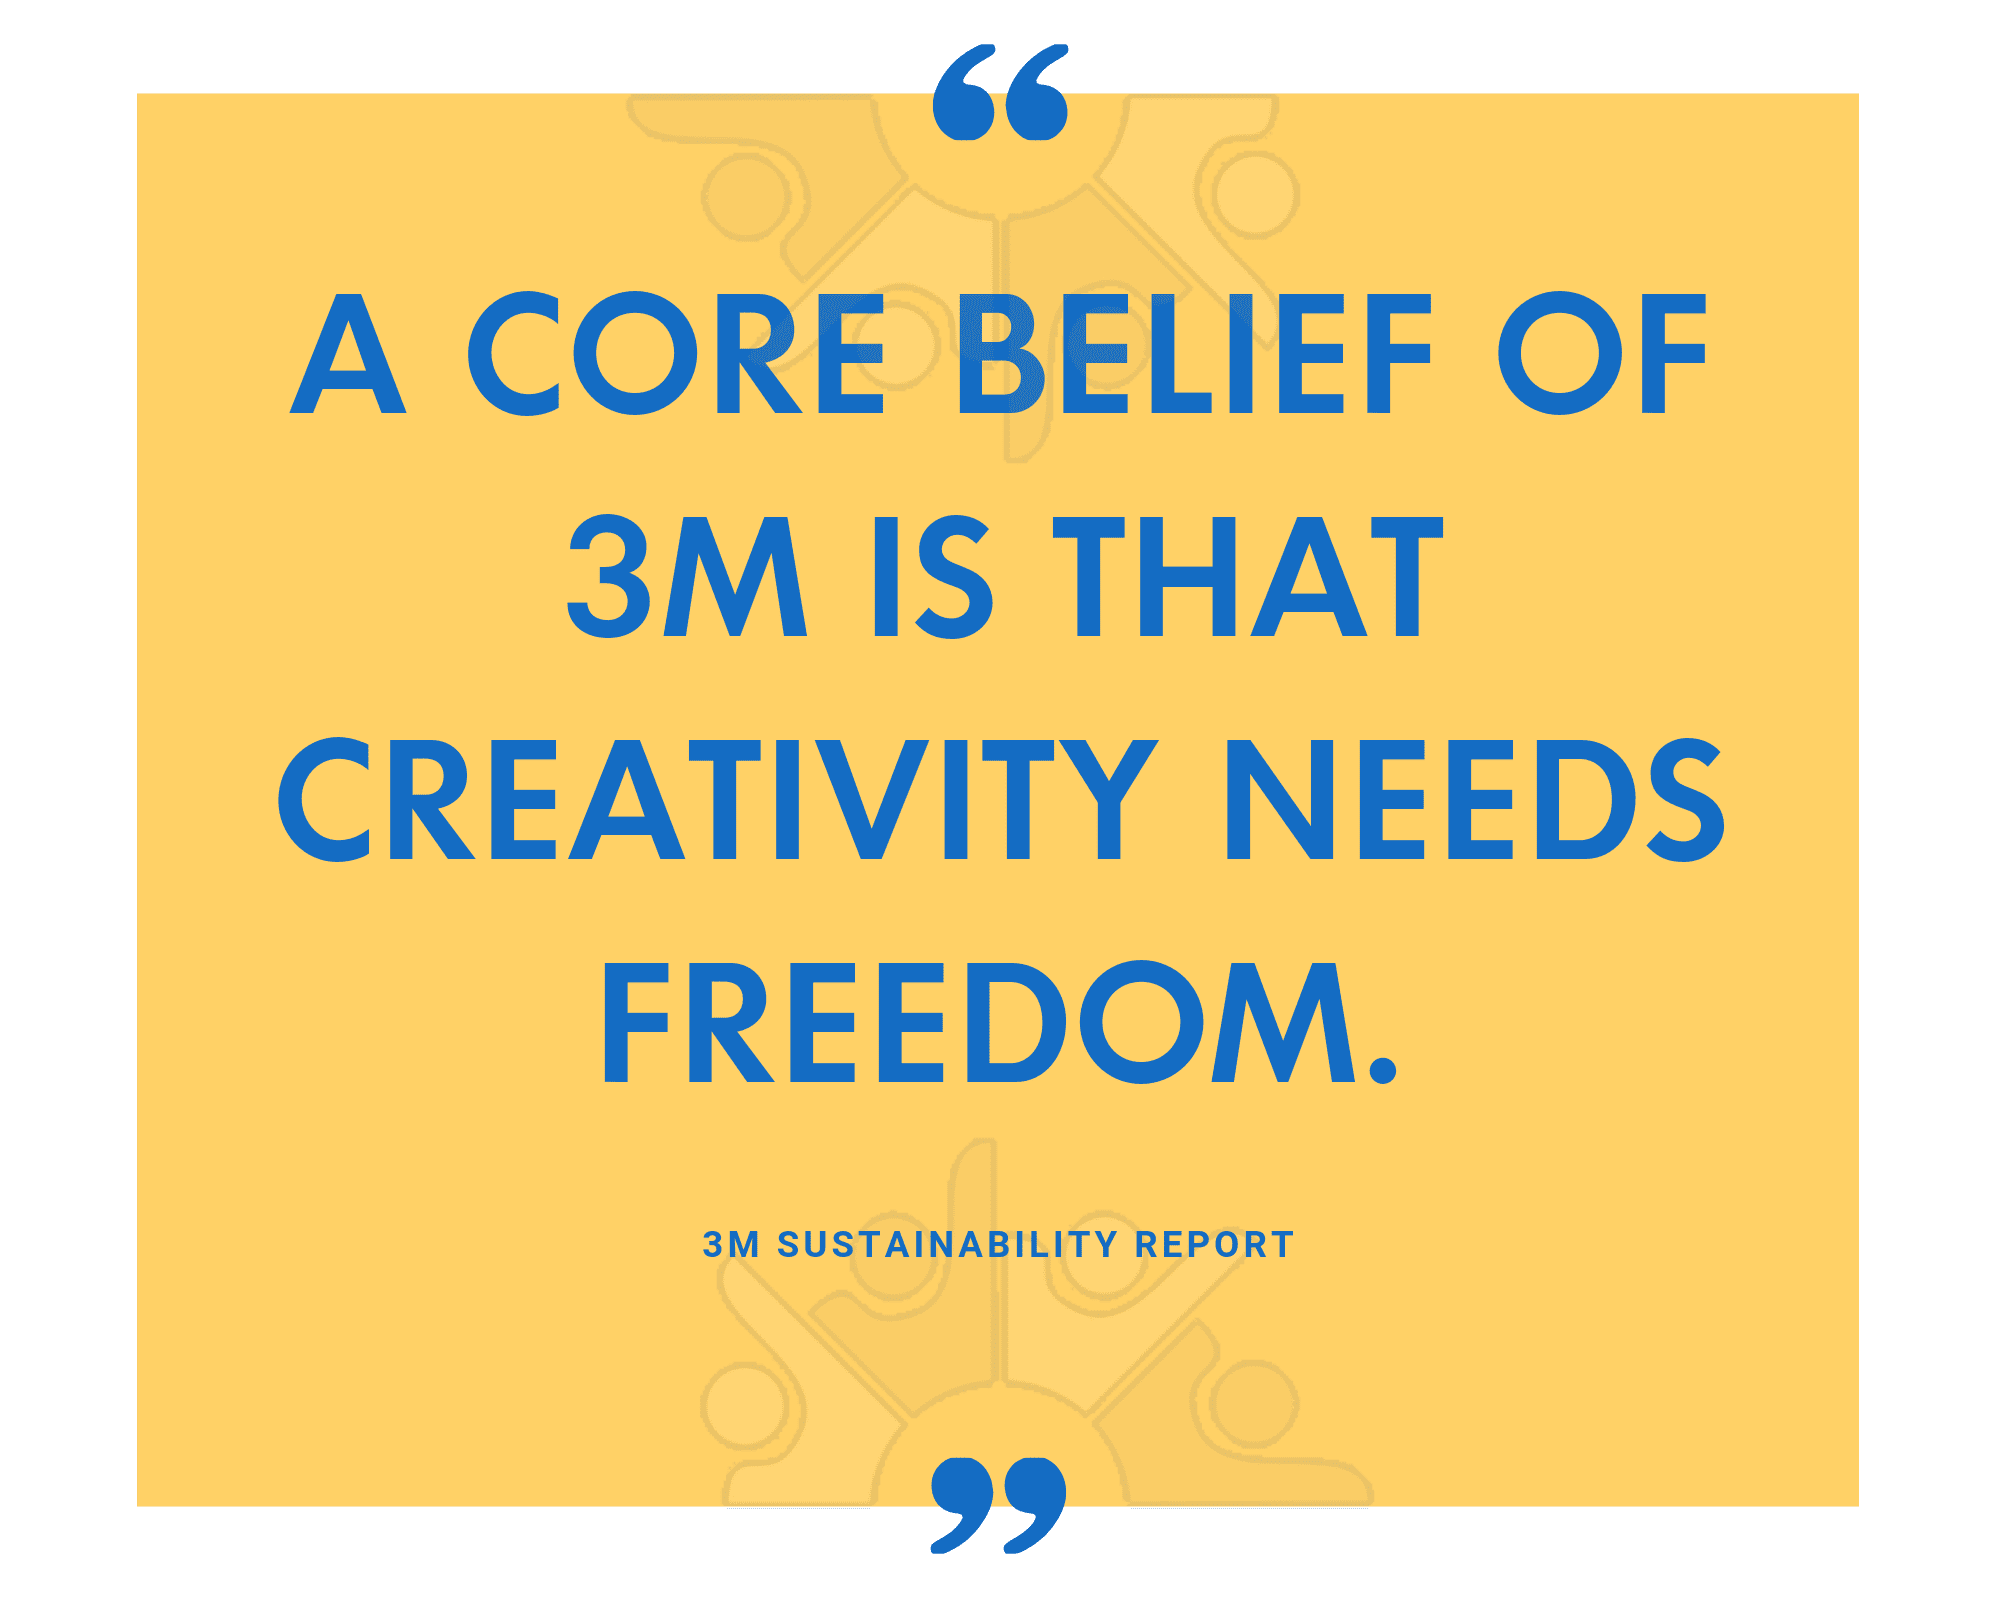 A core belief of 3M is that creativity needs freedom.